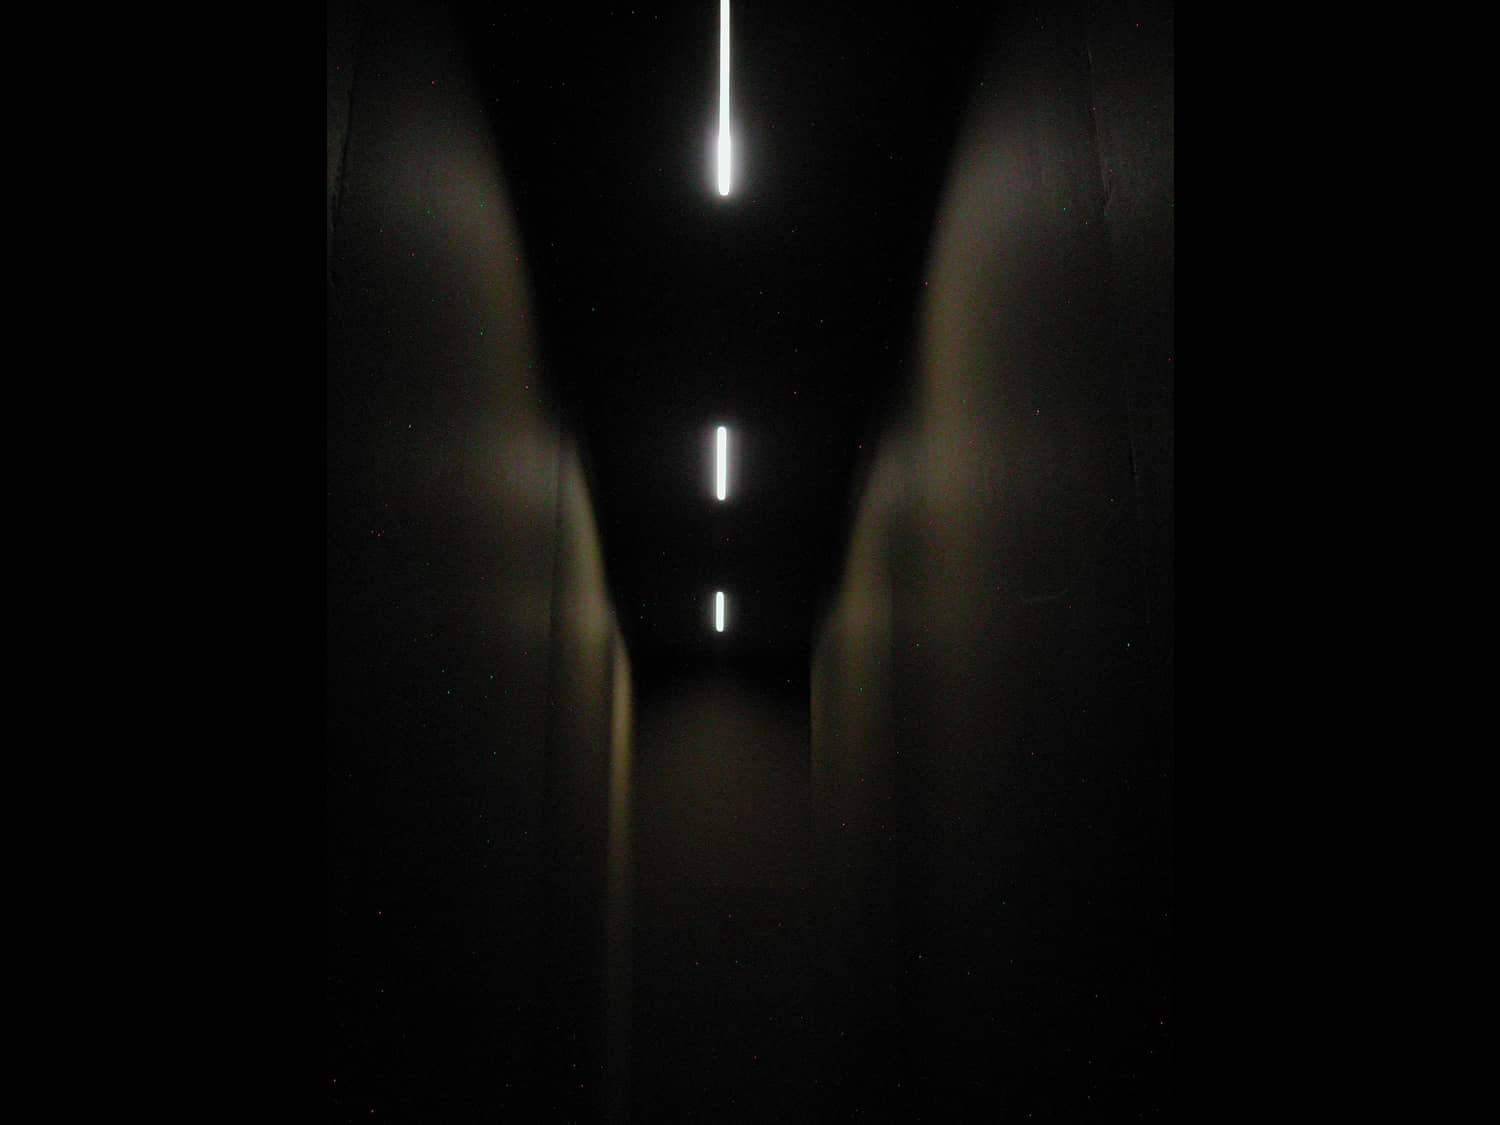 Corridor30 by Oliver Bokan and Julia Willms